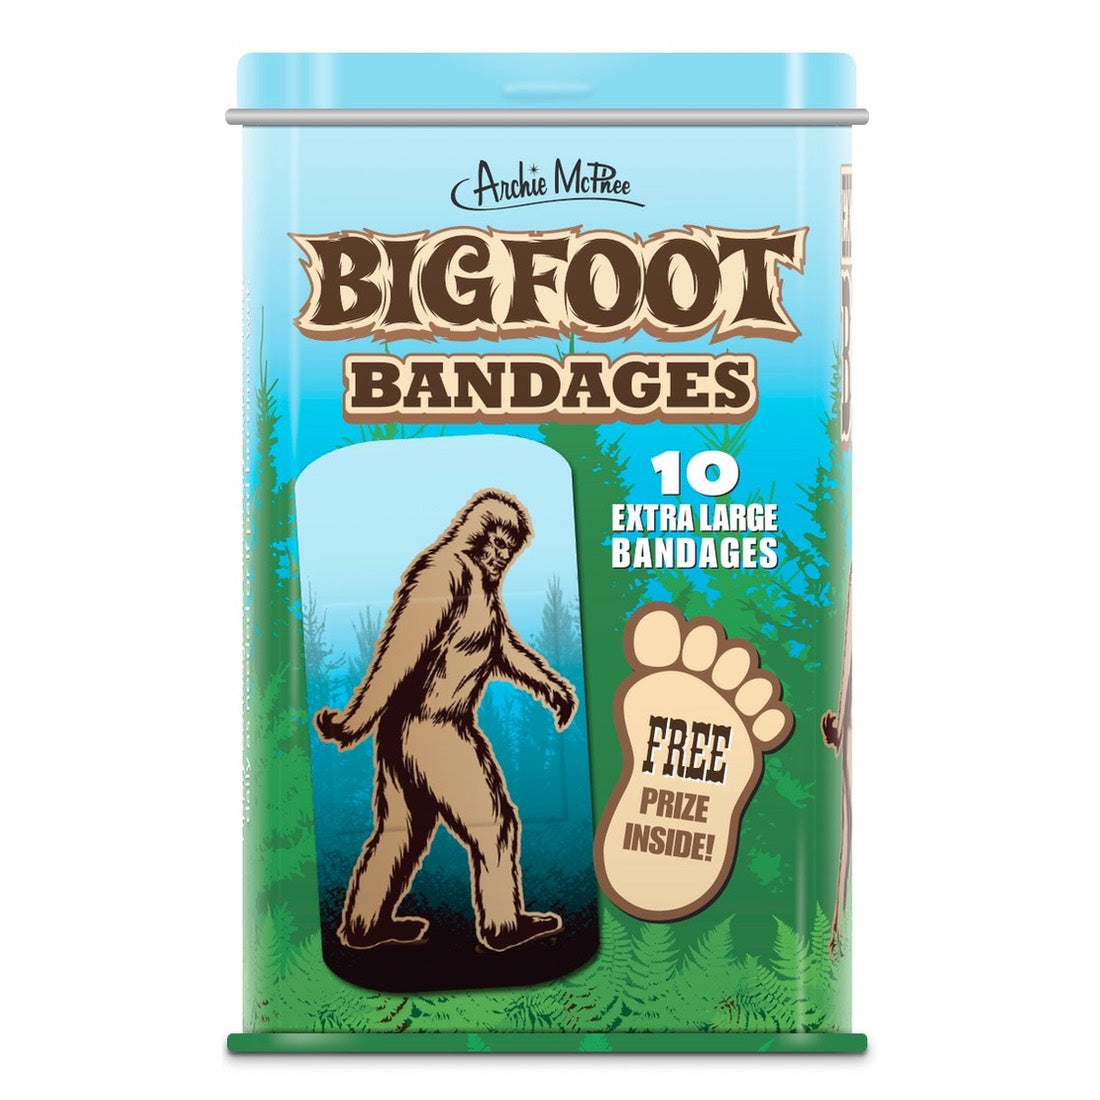 Bigfoot Bandages by Archie McPhee - Shop GagWorks.com